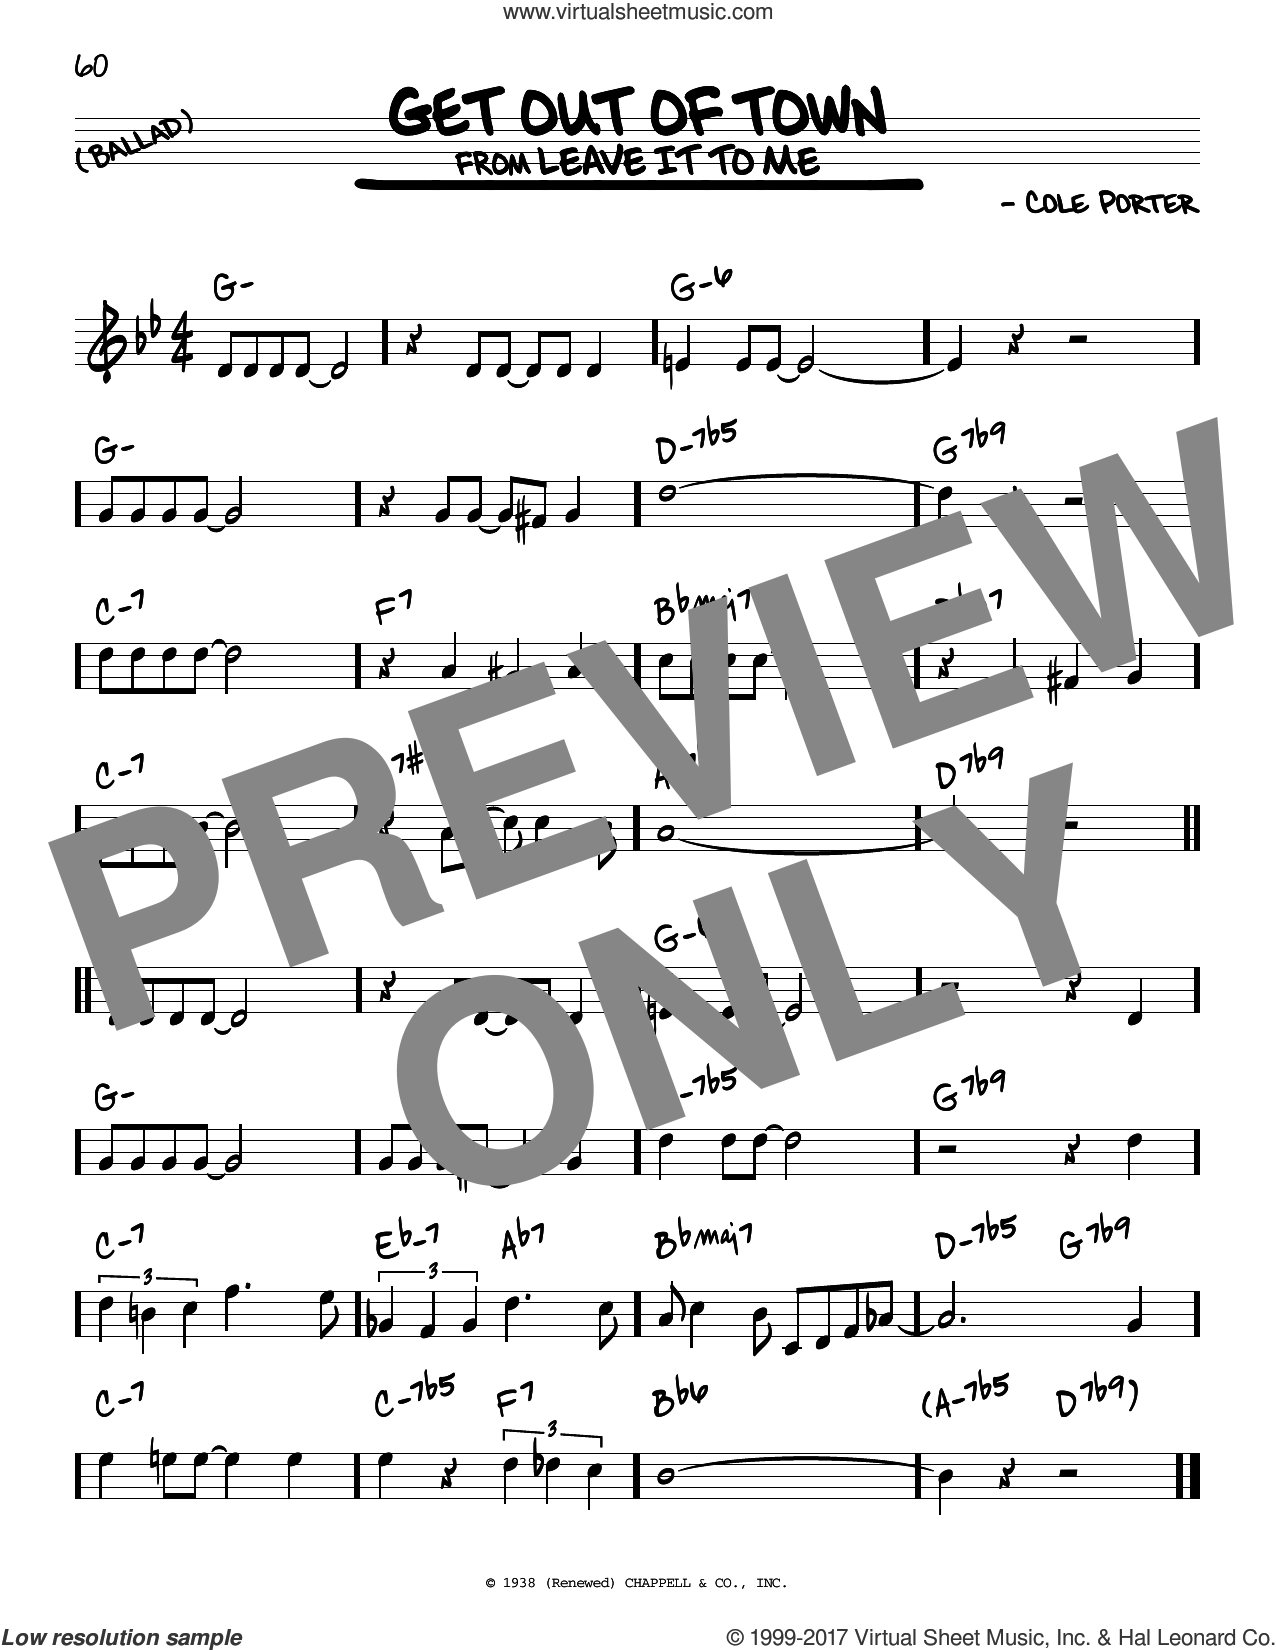 Get Out Of Town sheet music for voice and other instruments (real book) by Cole Porter, intermediate skill level